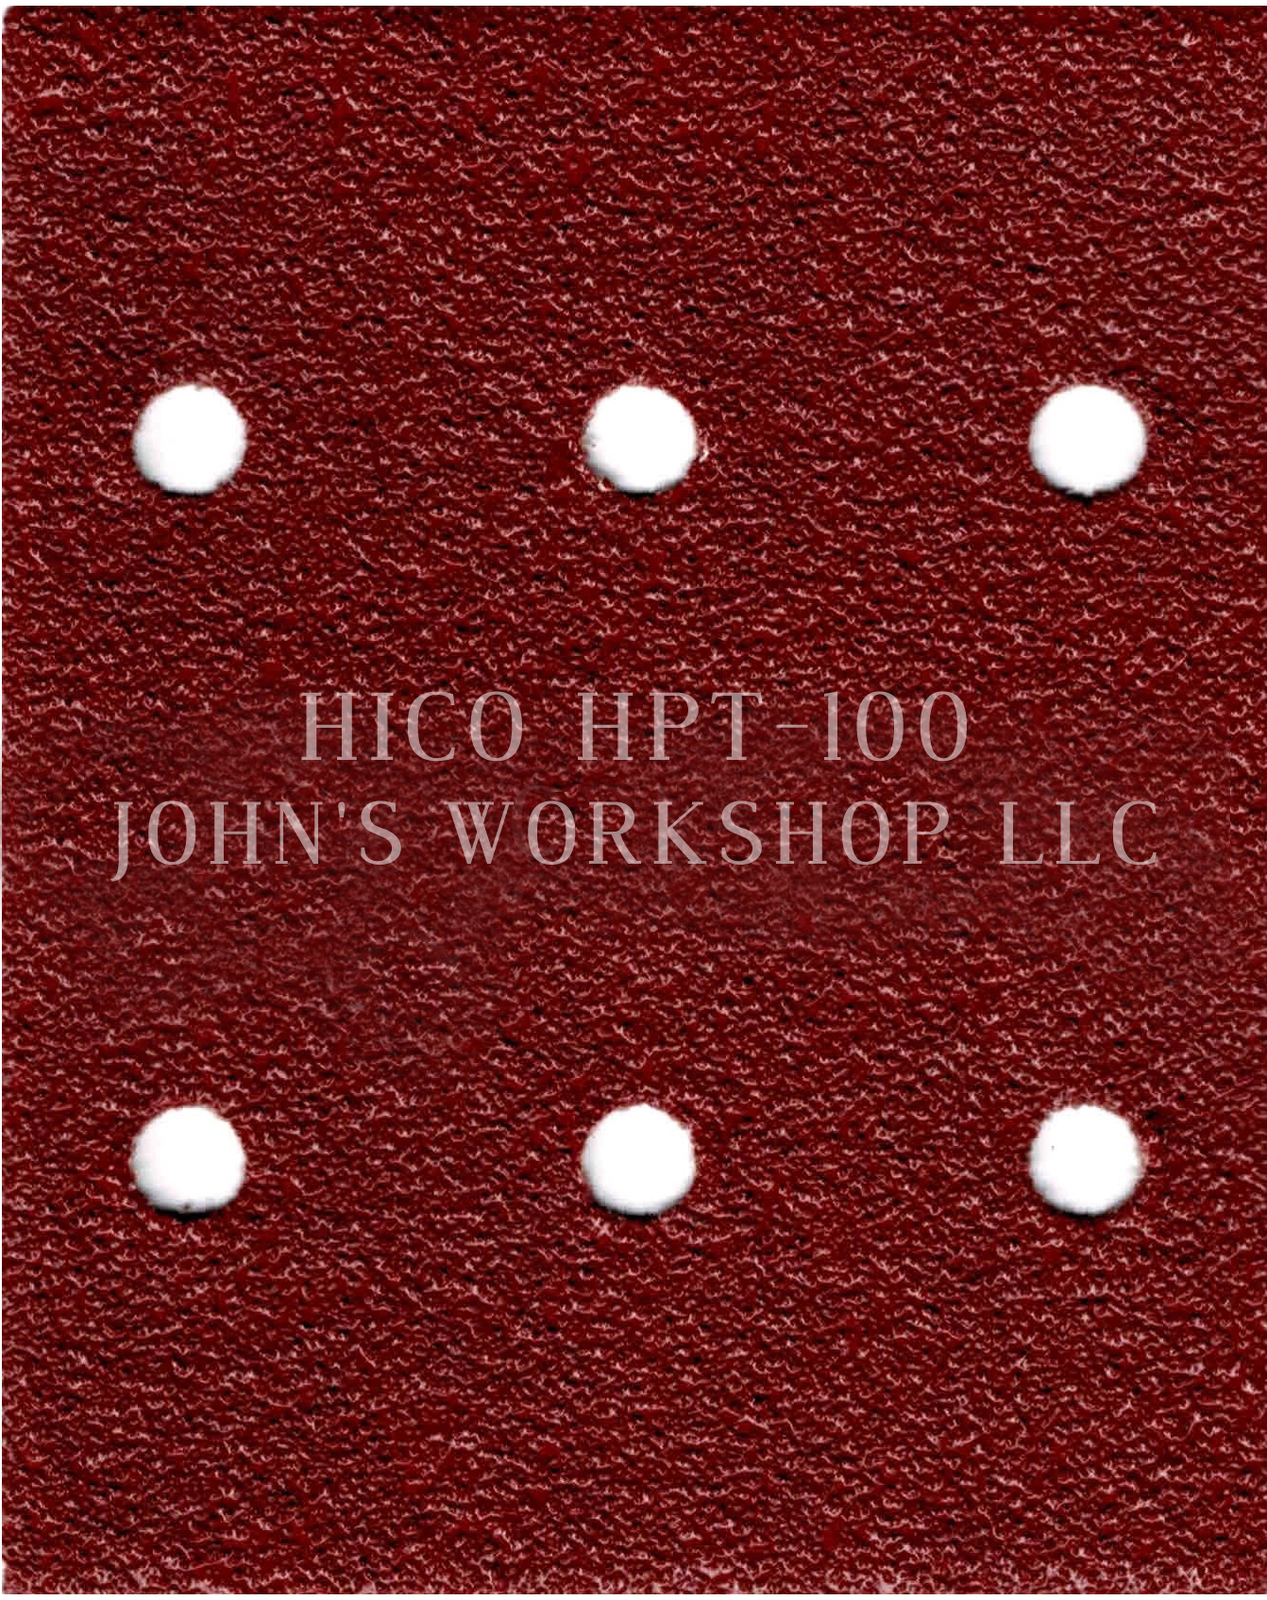 Primary image for Build Your Own Bundle of HICO HPT-100 1/4 Sheet No-Slip Sandpaper - 17 Grits!